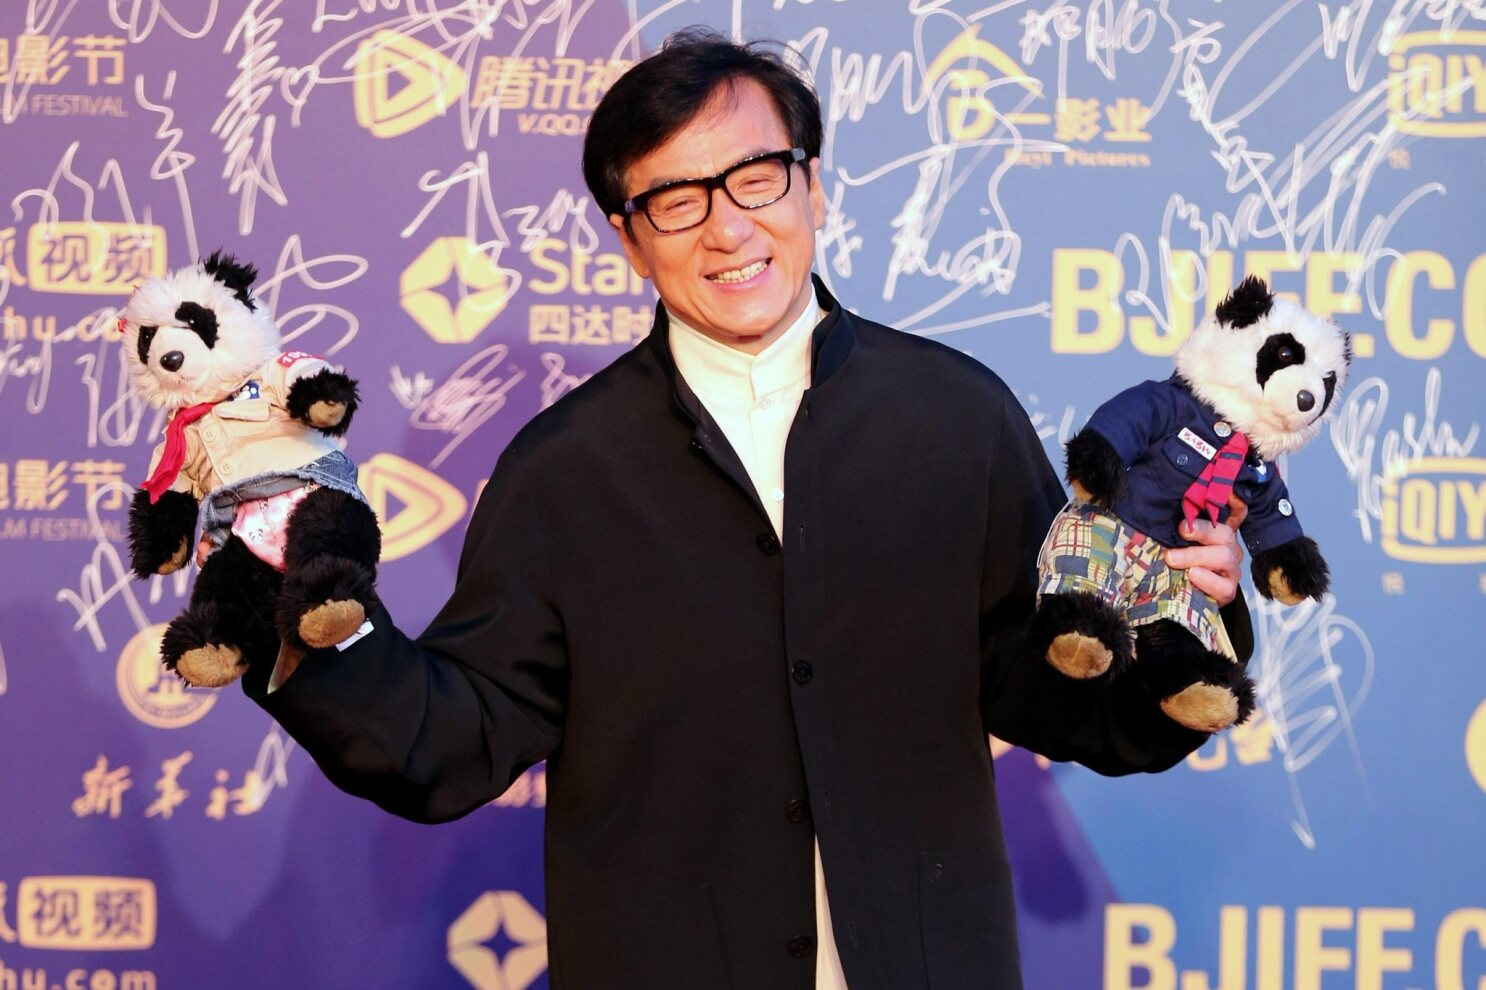 Jackie Chan says he's 'numb' to beautiful women, admits